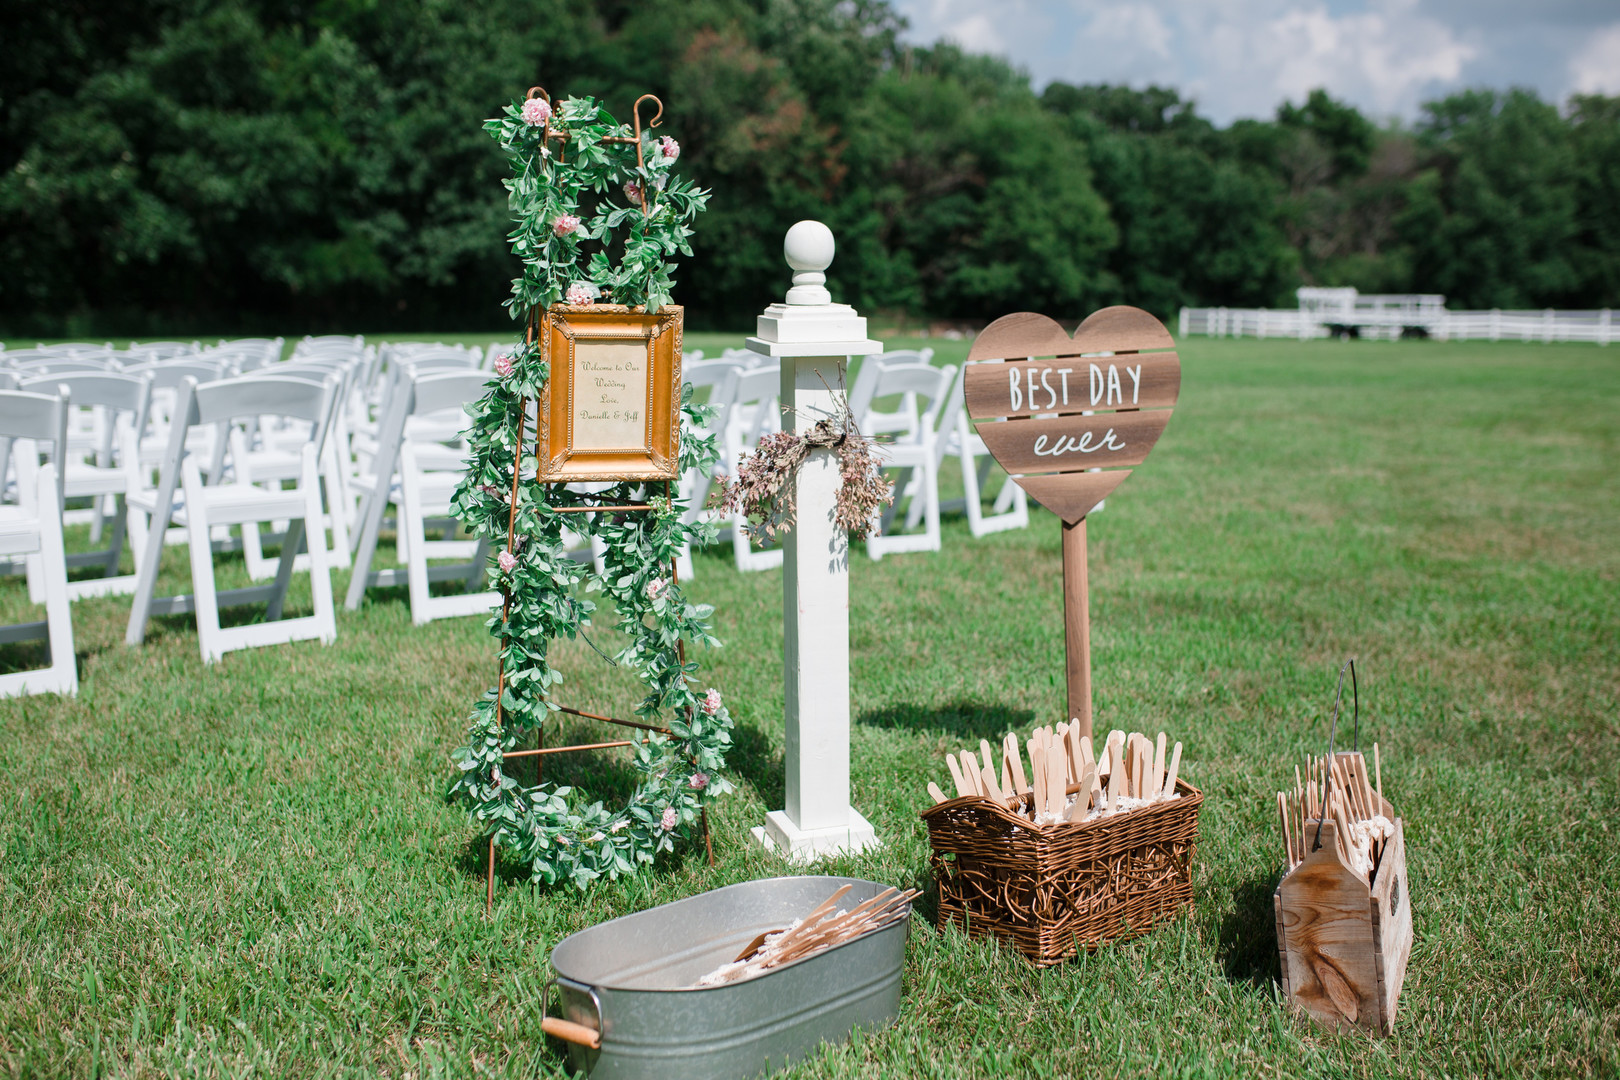 Wedding ceremony decor: Rustic country wedding in Minooka, IL captured by Katie Brsan Photography. Visit CHItheeWED.com for more wedding inspiration!